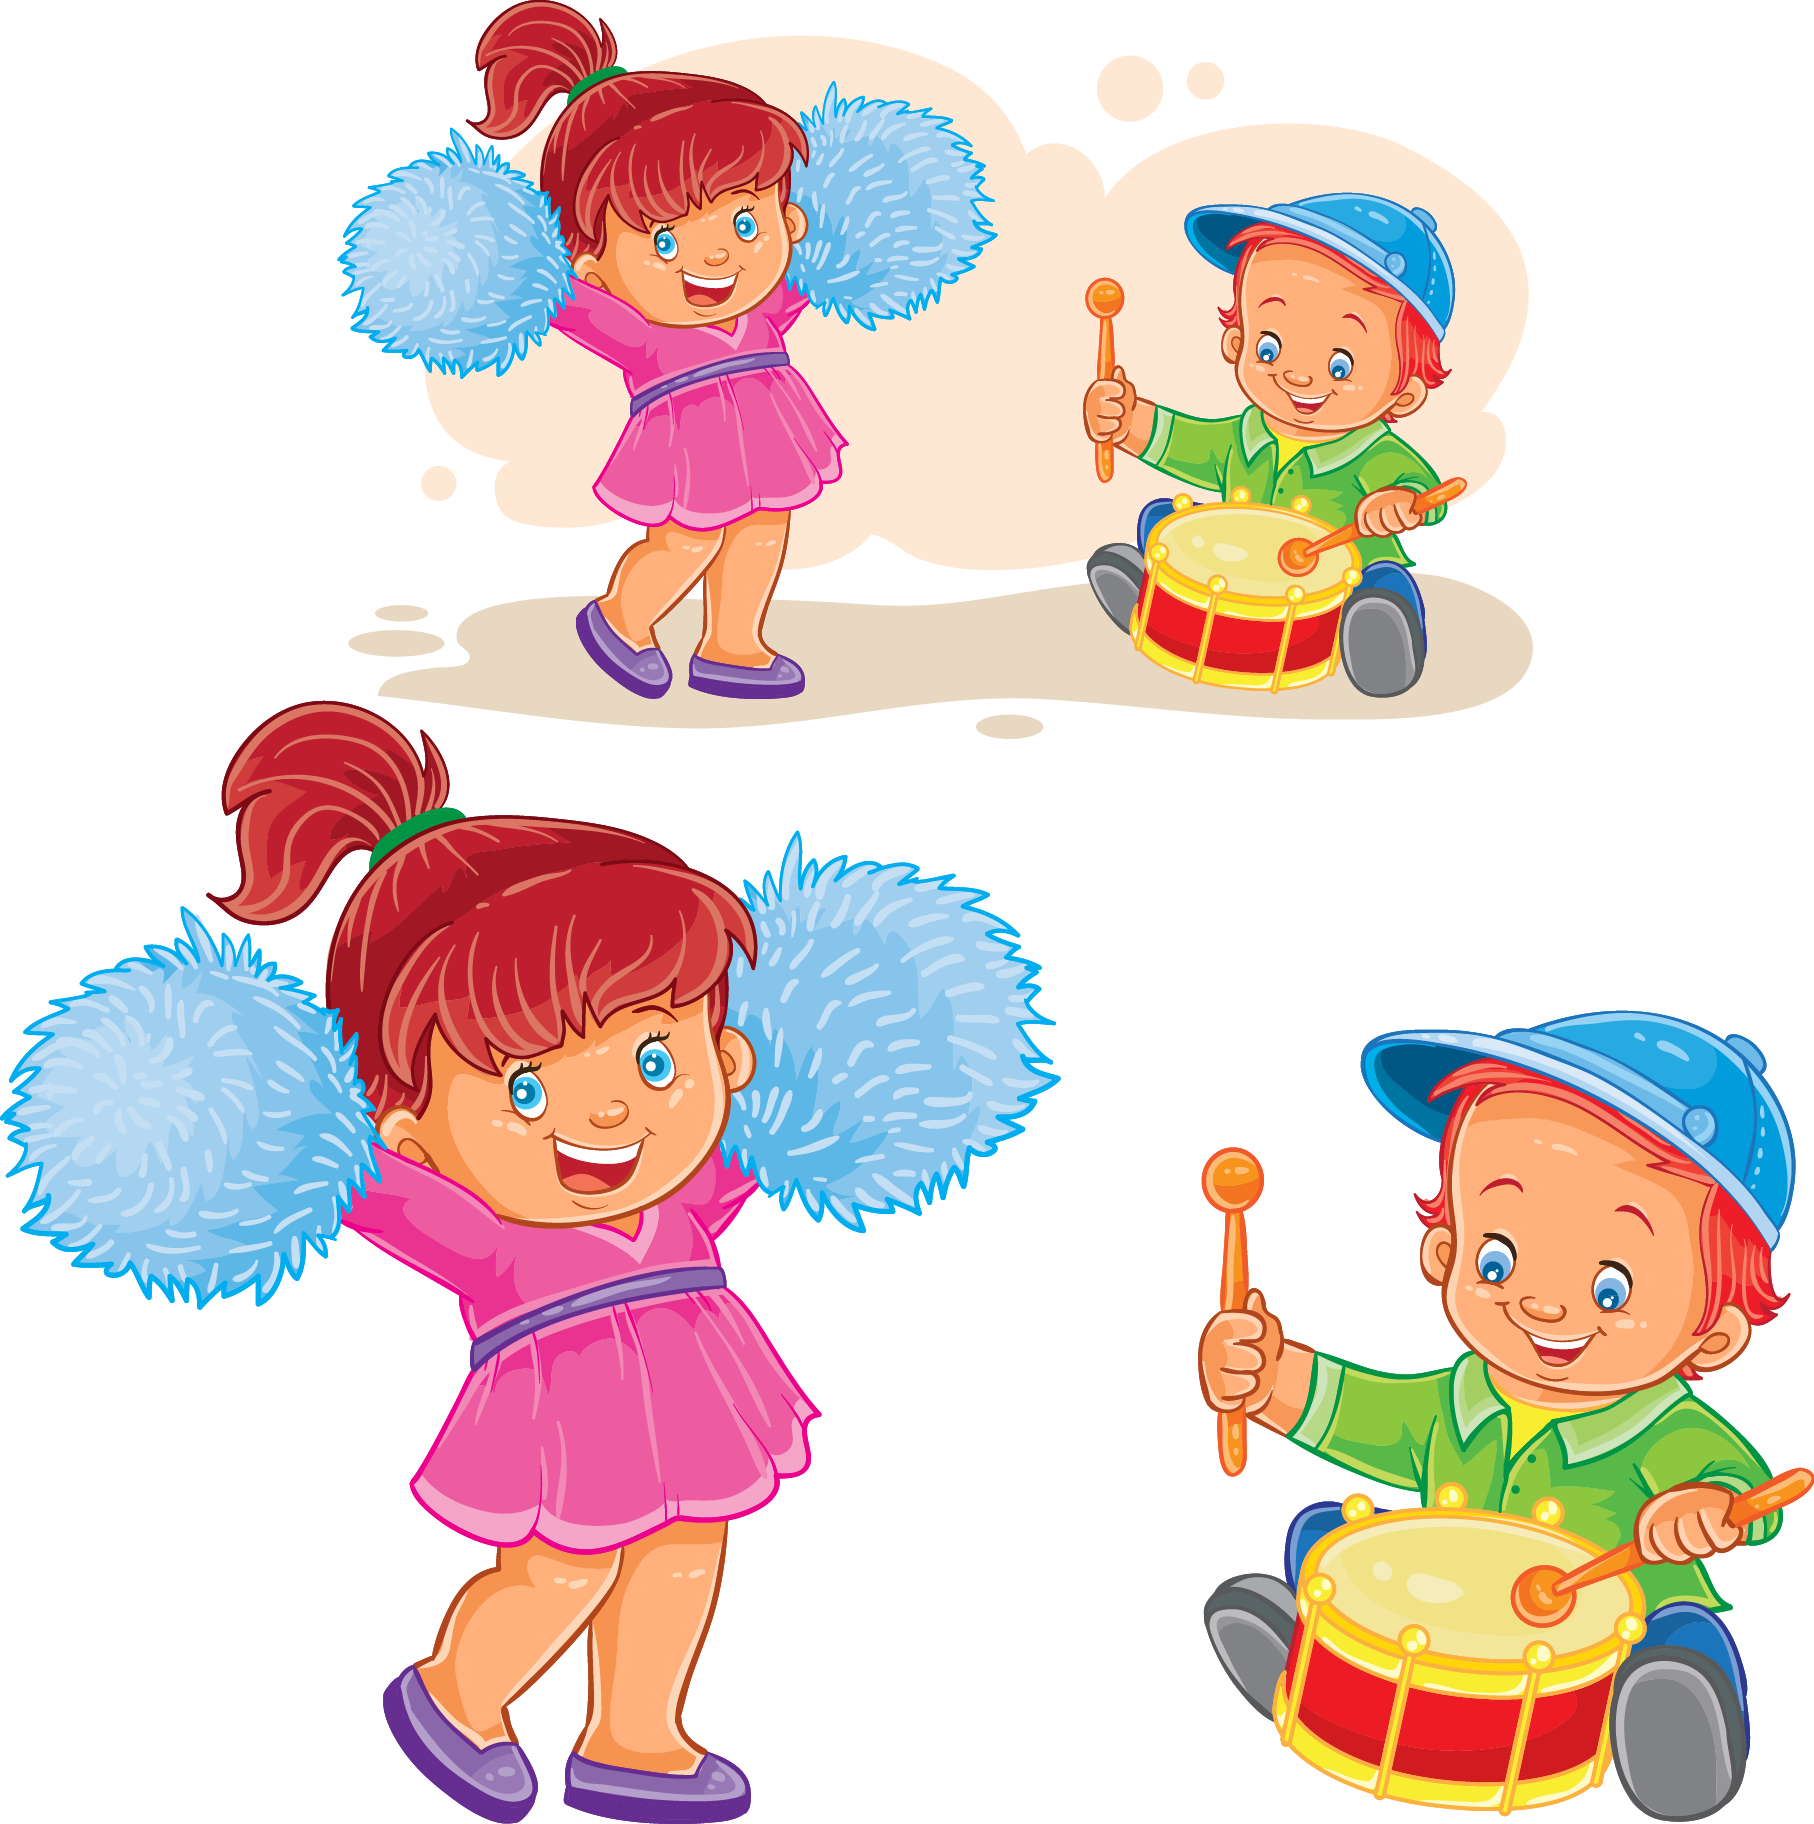 Child play royalty free. Drums clipart toy drum